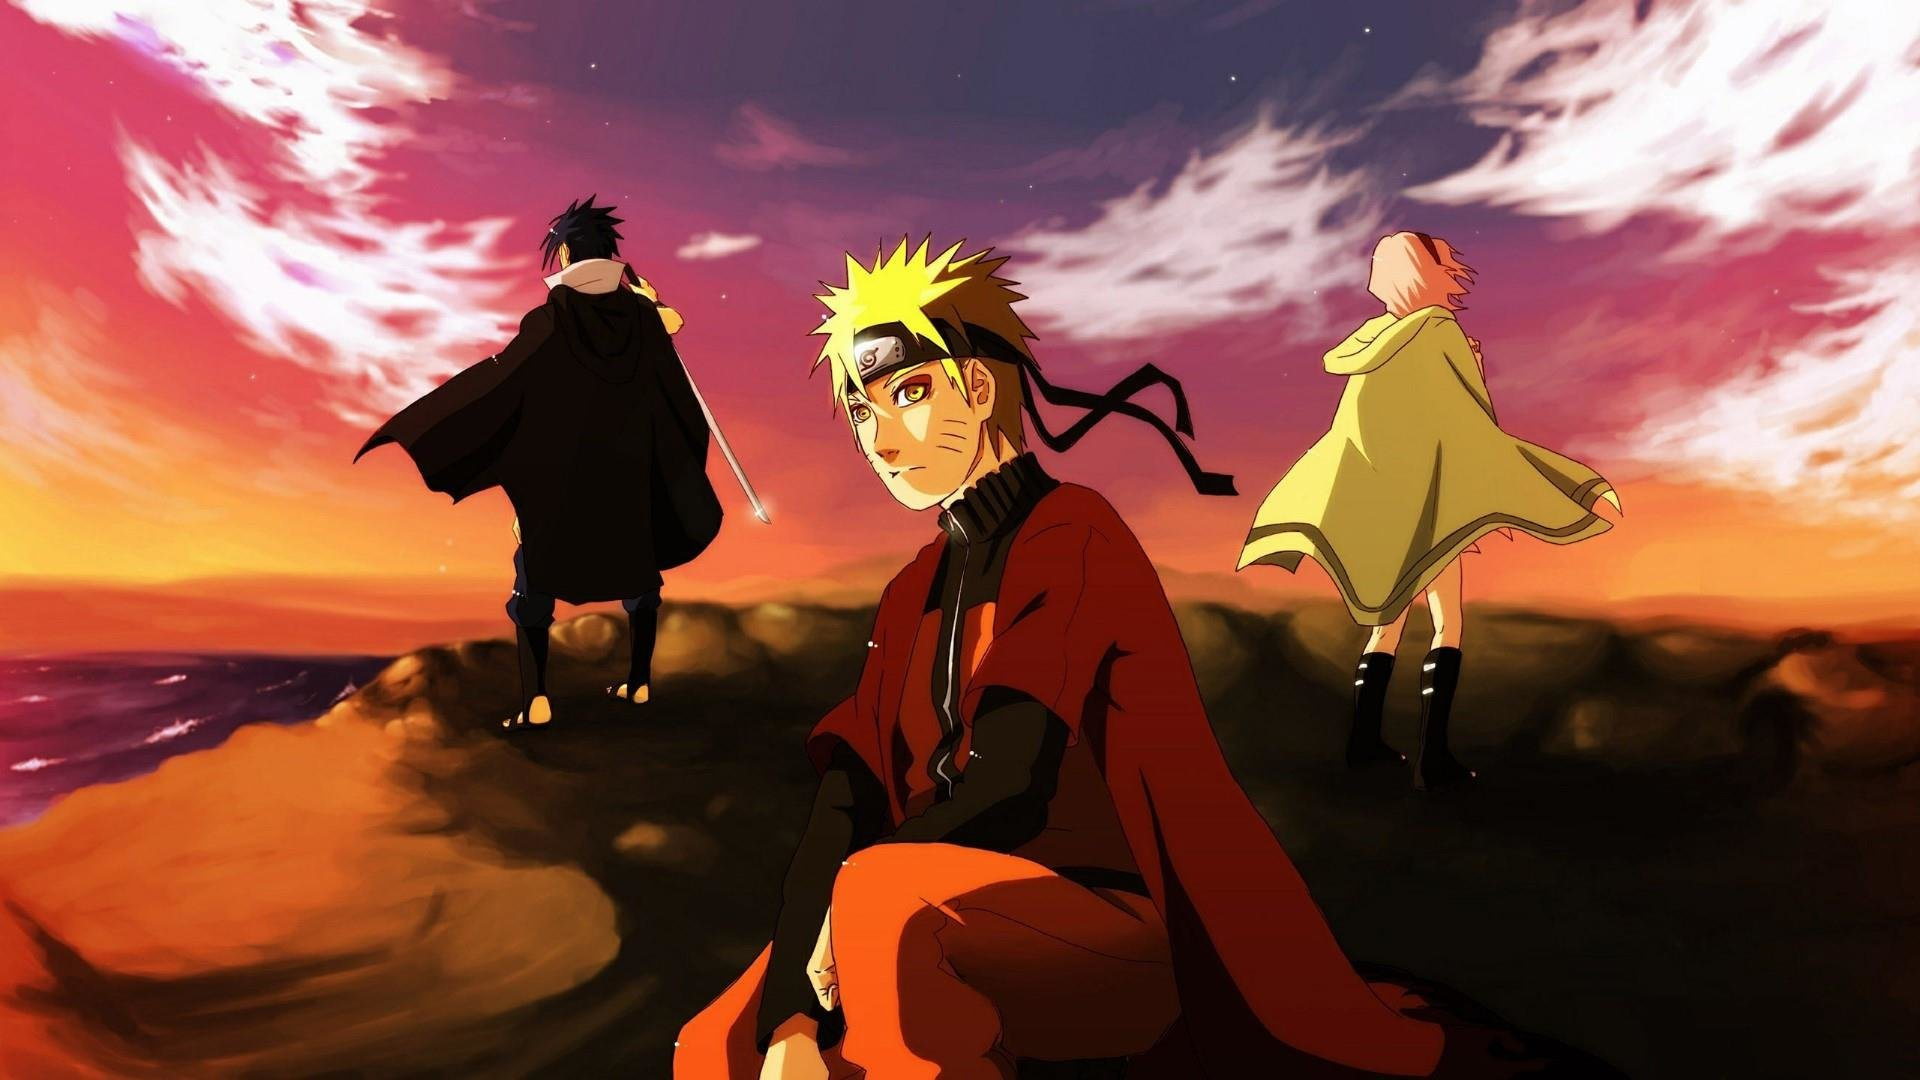 Download full hd 1080p Naruto desktop wallpaper ID:395518 for free